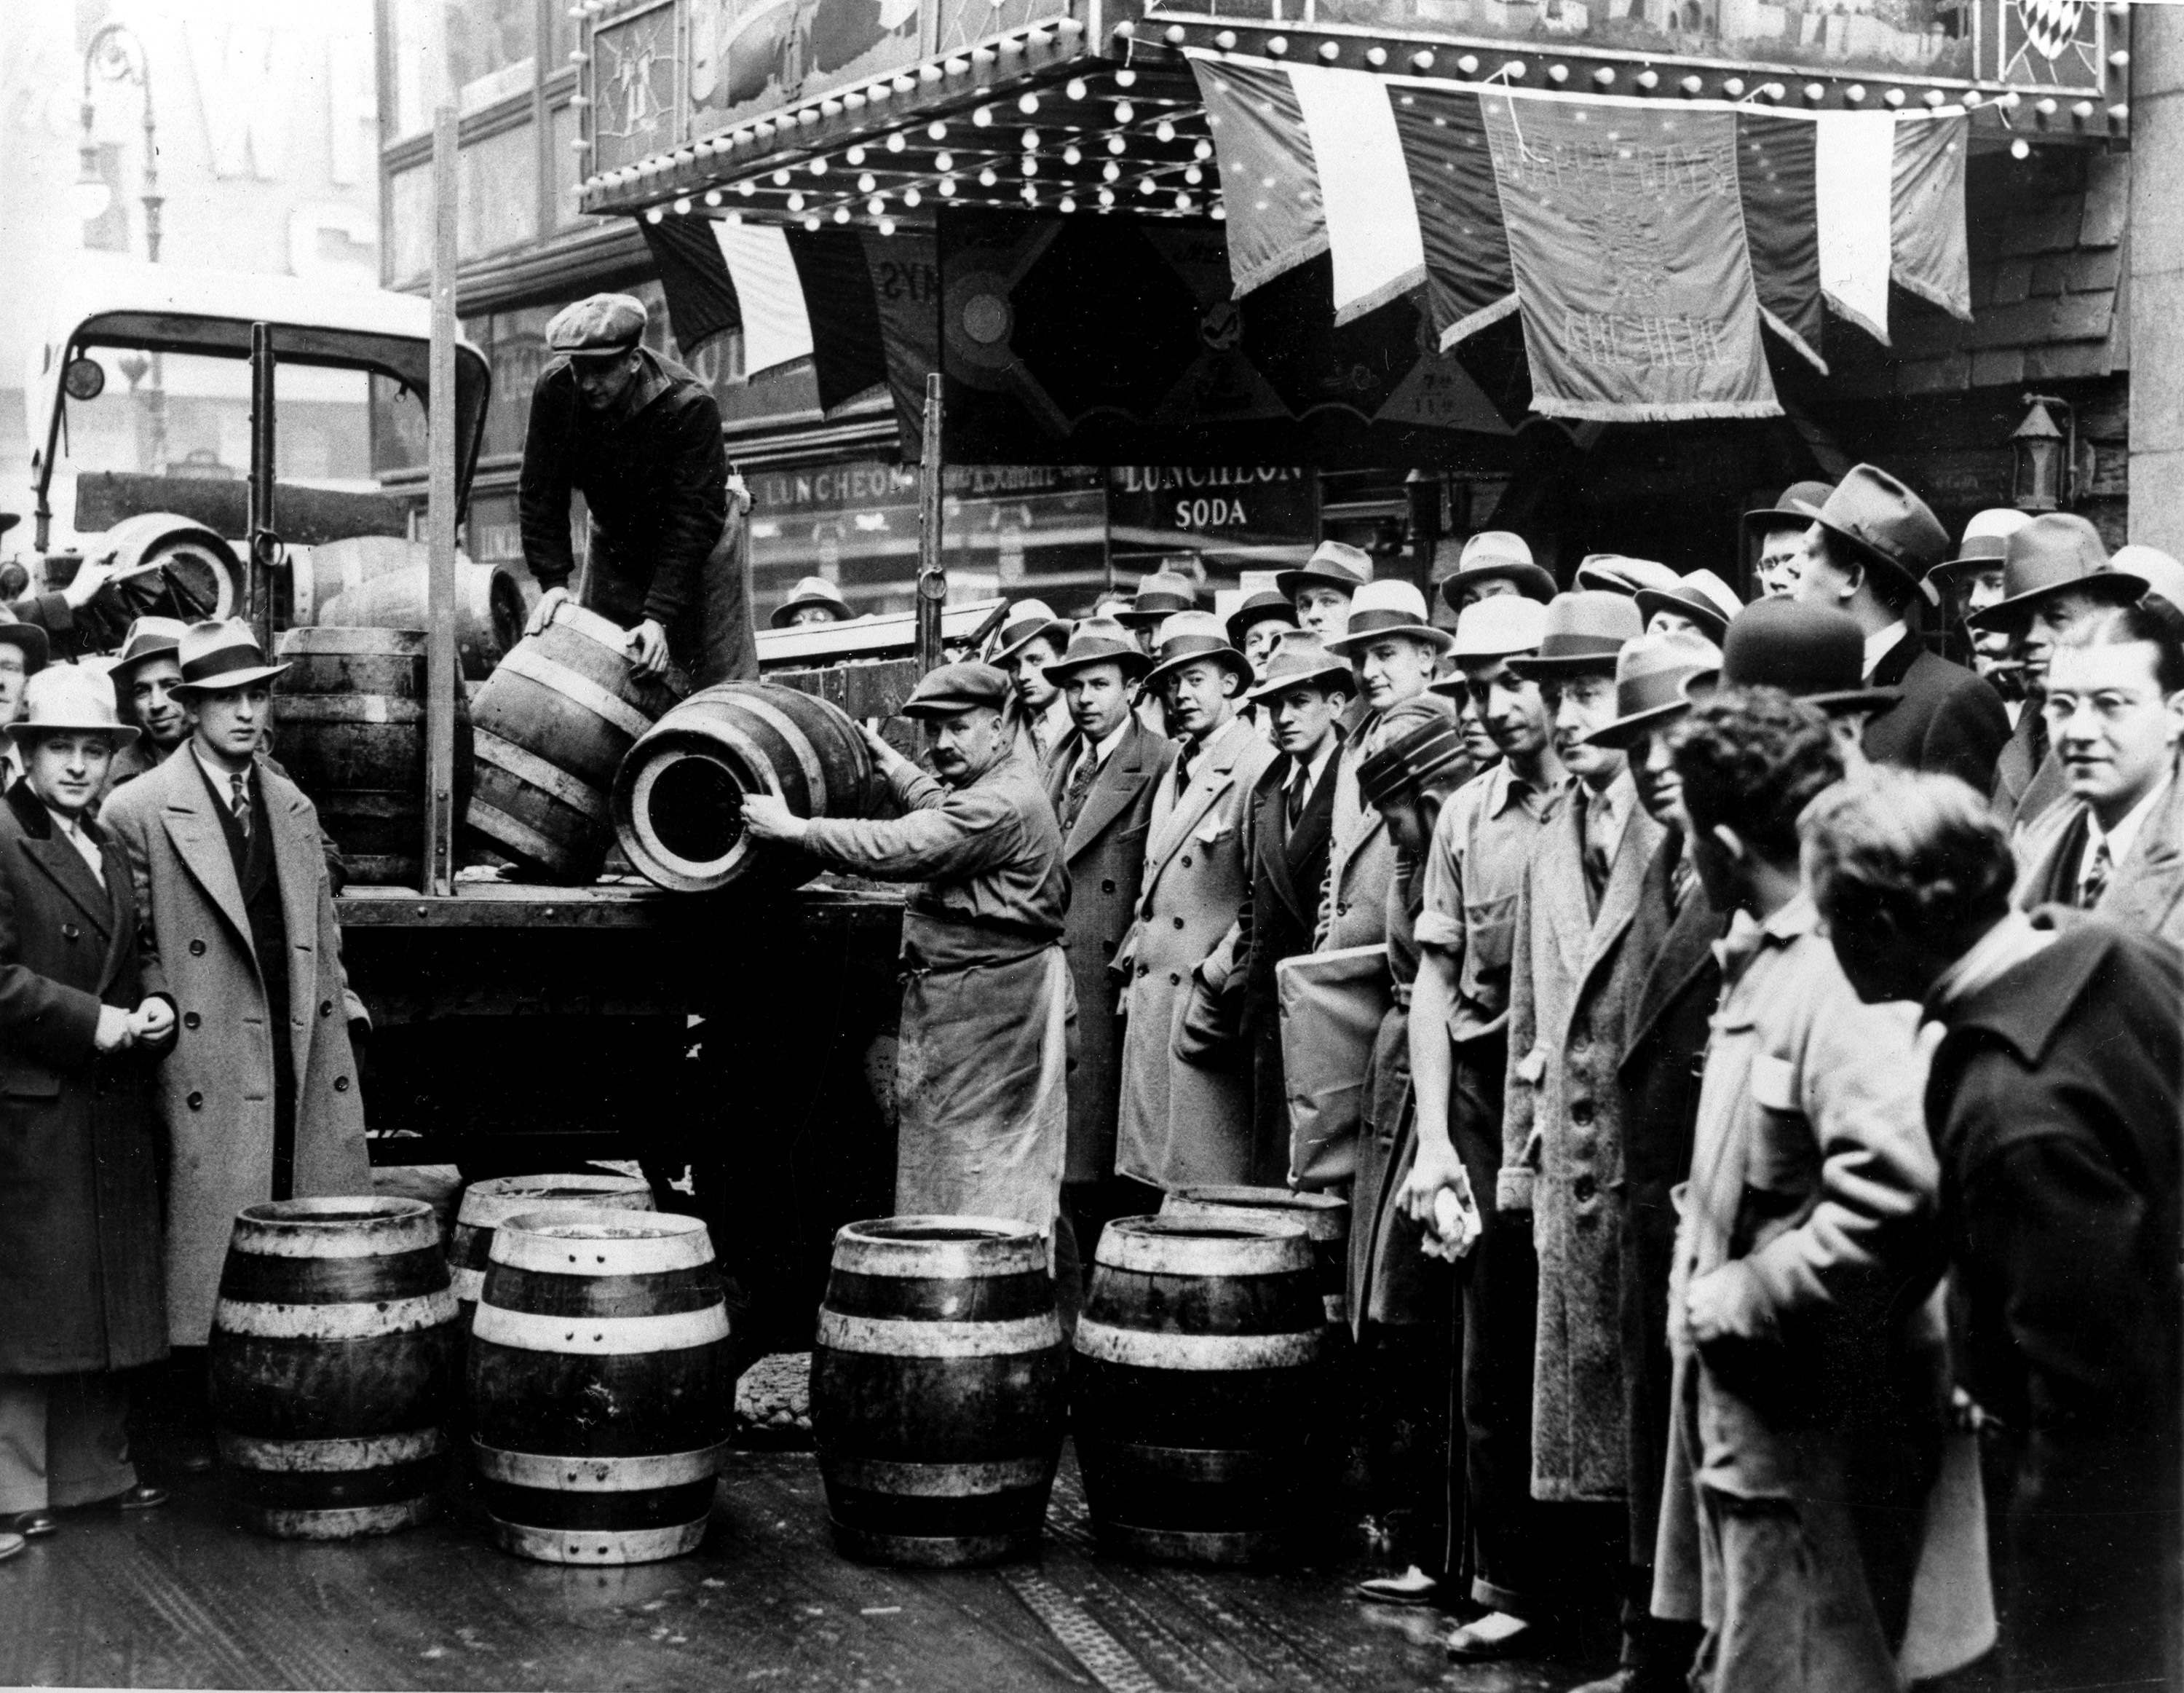 prohibition era On may 27, 1919–that's 93 years ago this past sunday–the prohibition era began in ohio, nearly six months before the 18th amendment was passed by congress to become a national law on october 28, 1919.